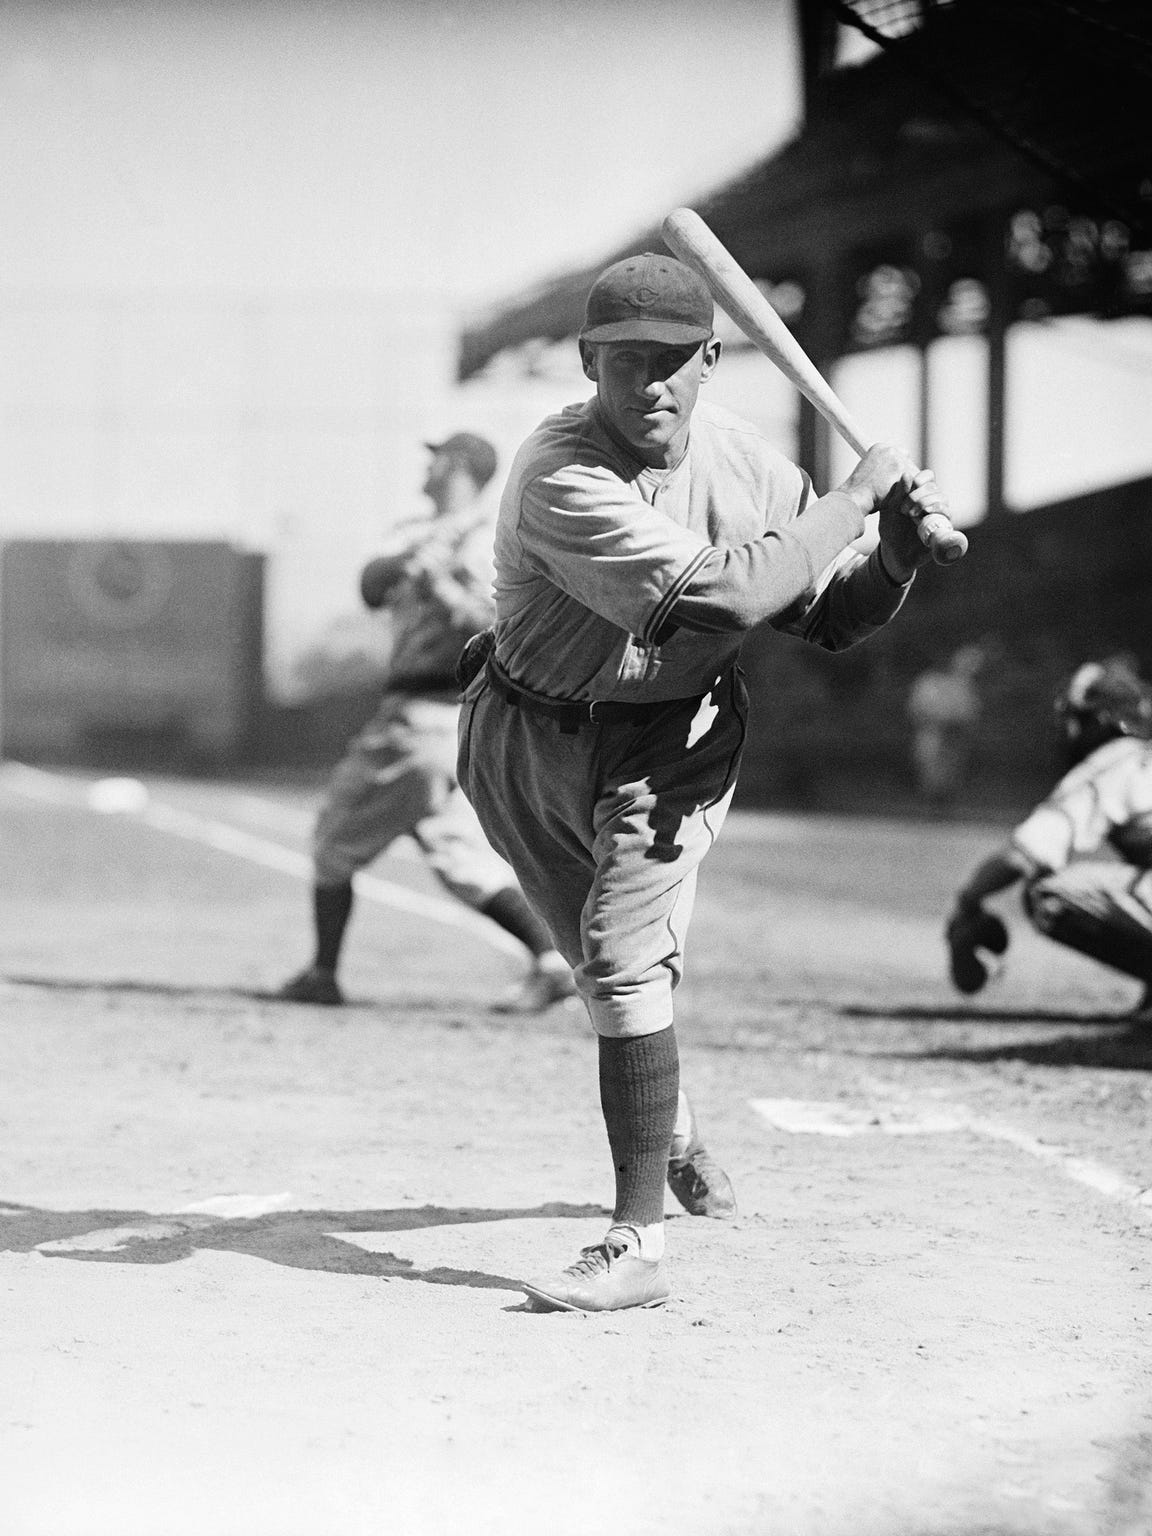 Kiki Cuyler, Chicago Cubs outfielder is shown in posed